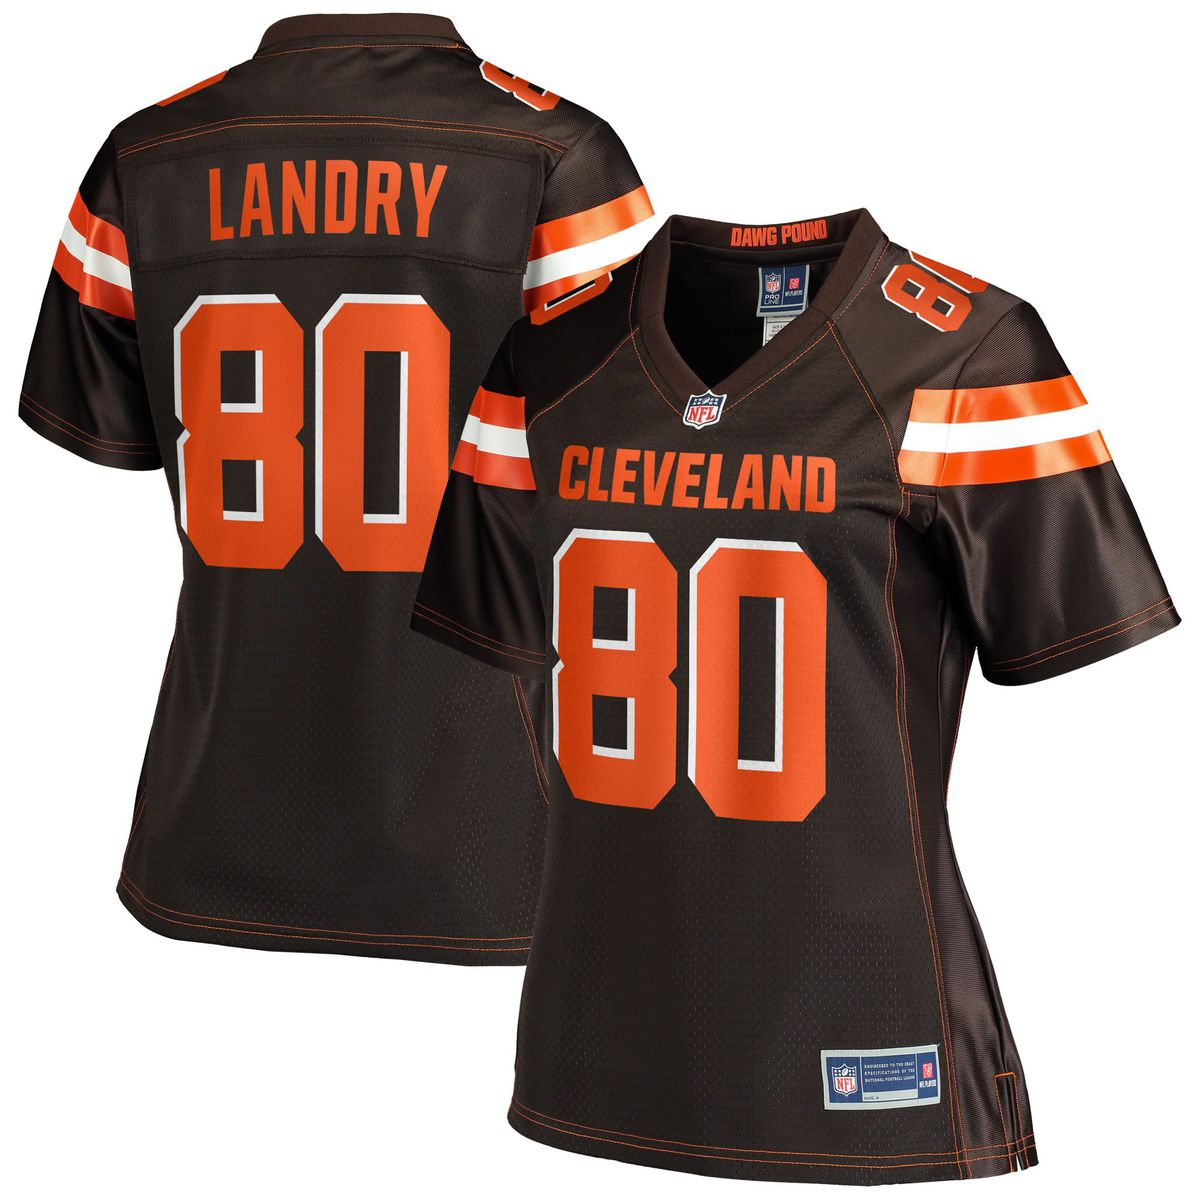 when do nfl rookie jerseys come out